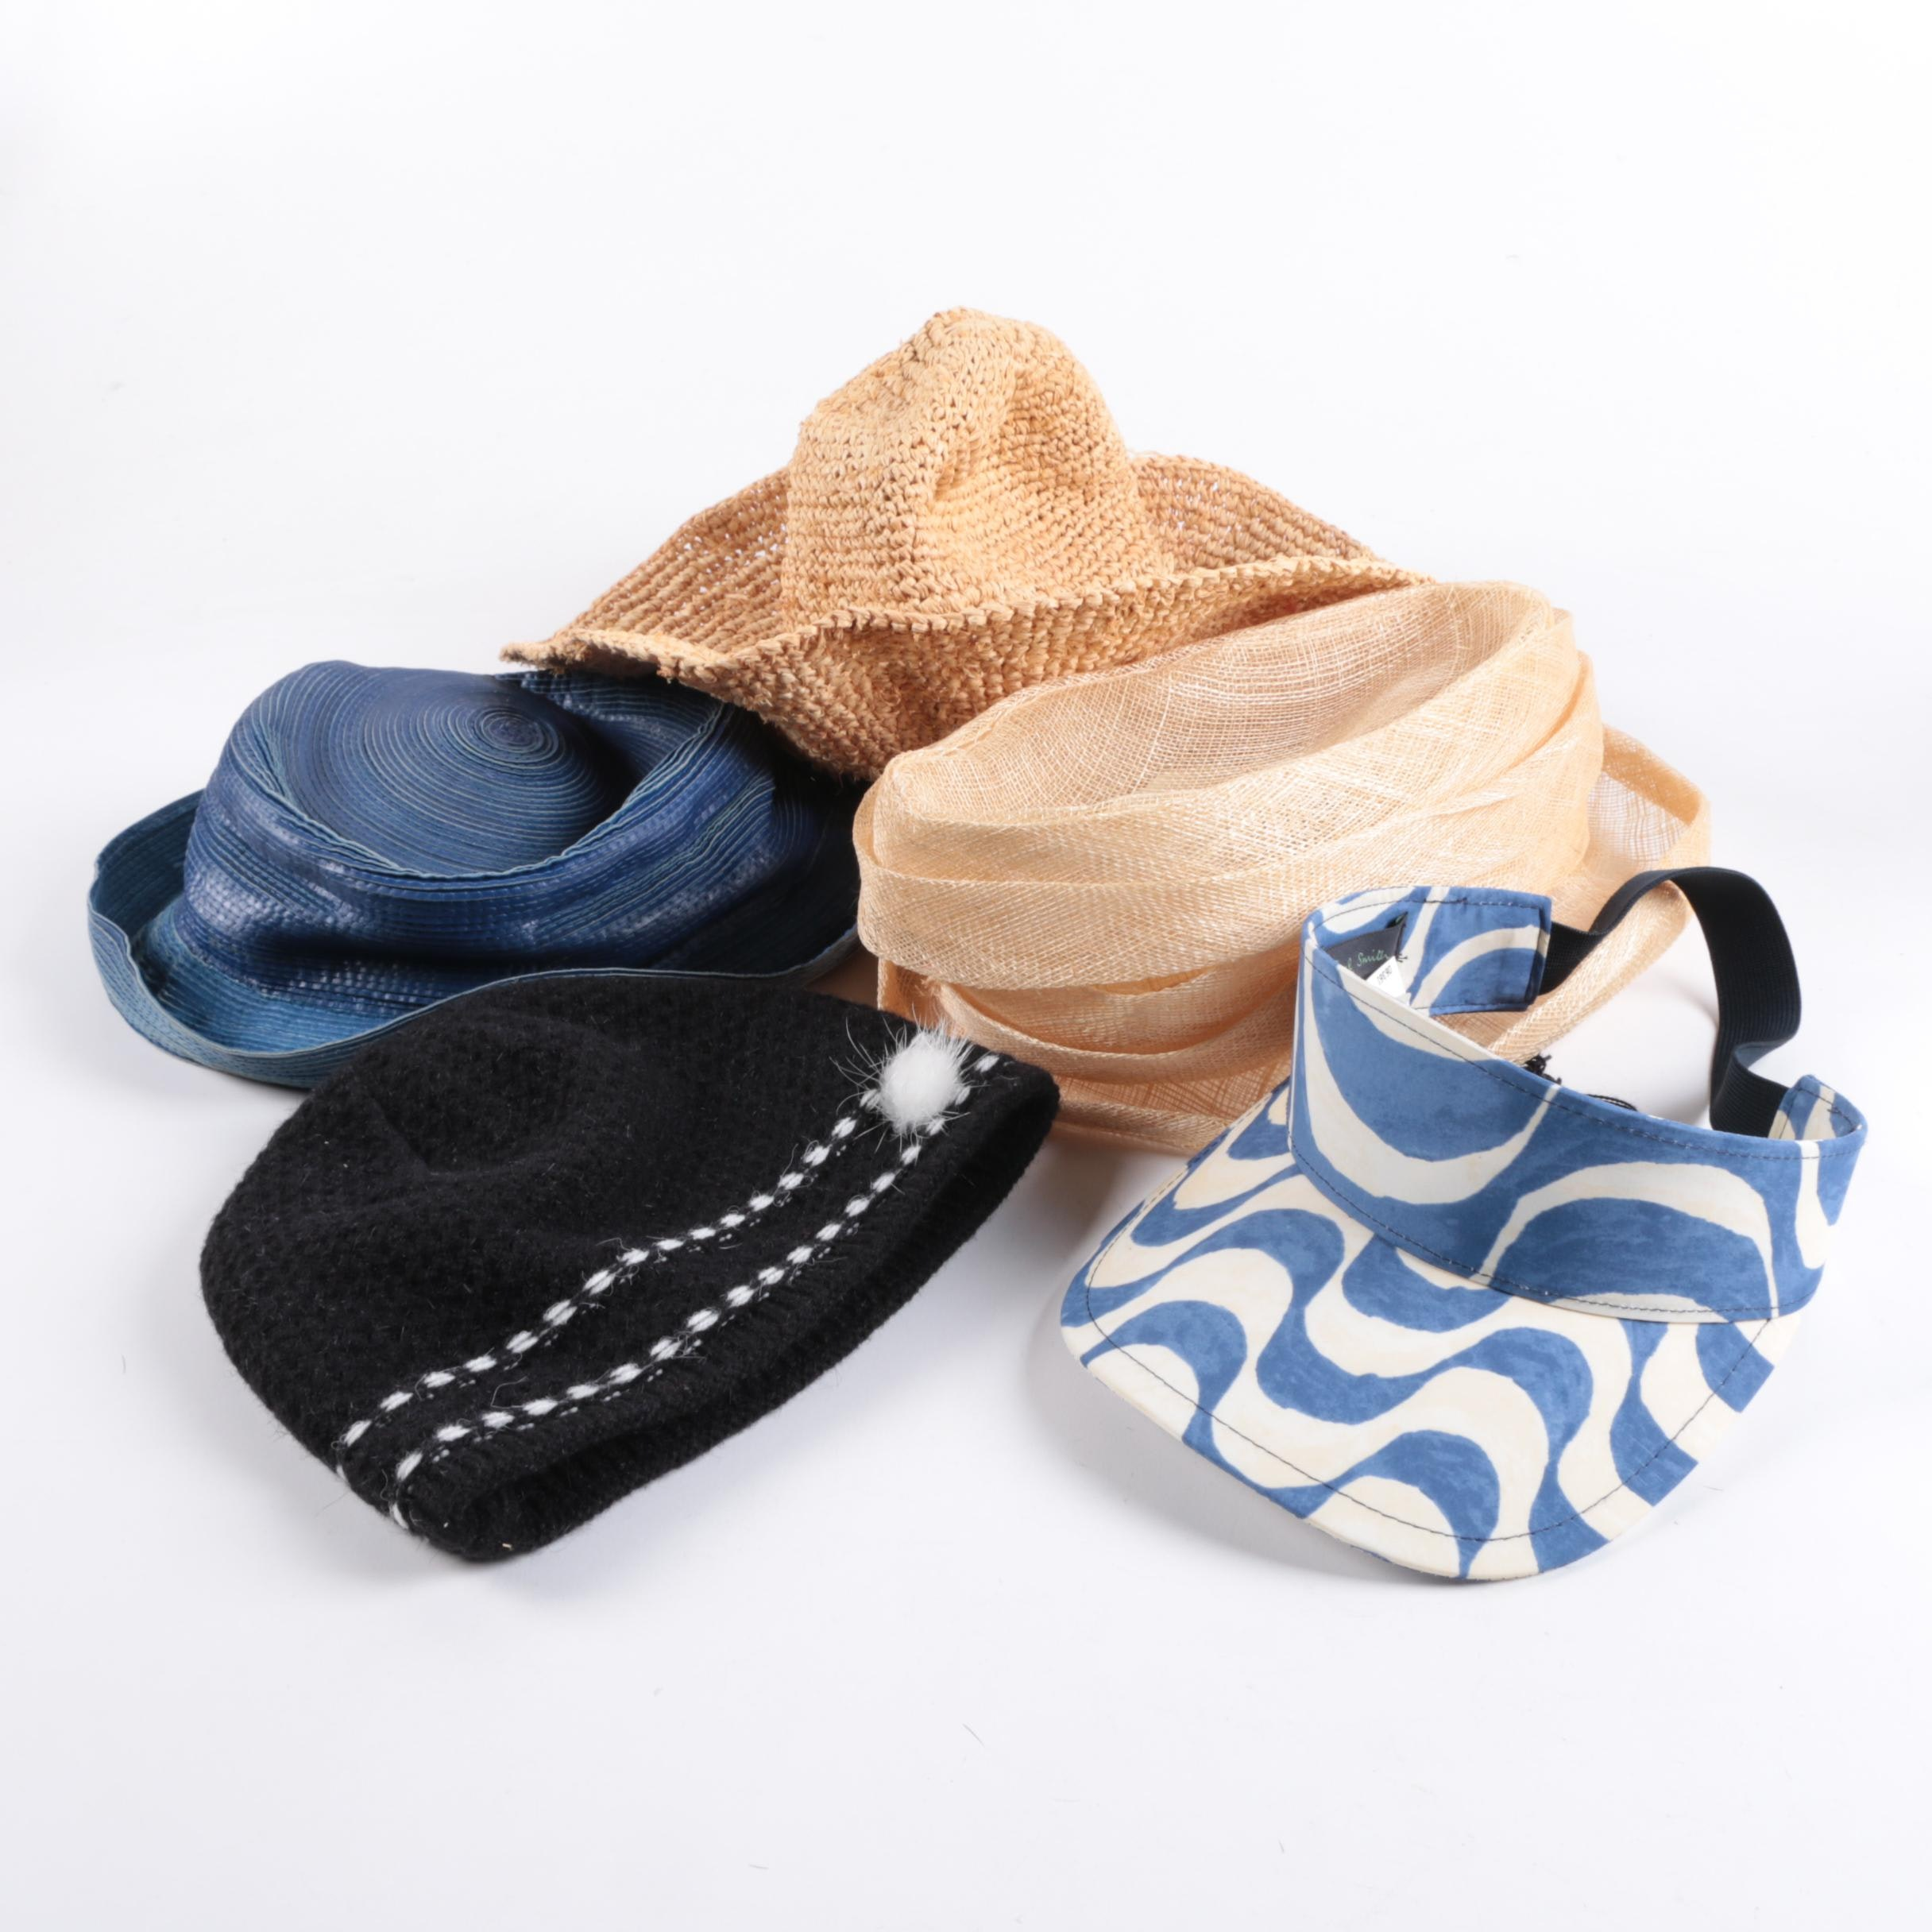 Women's Hat Assortment with Vintage